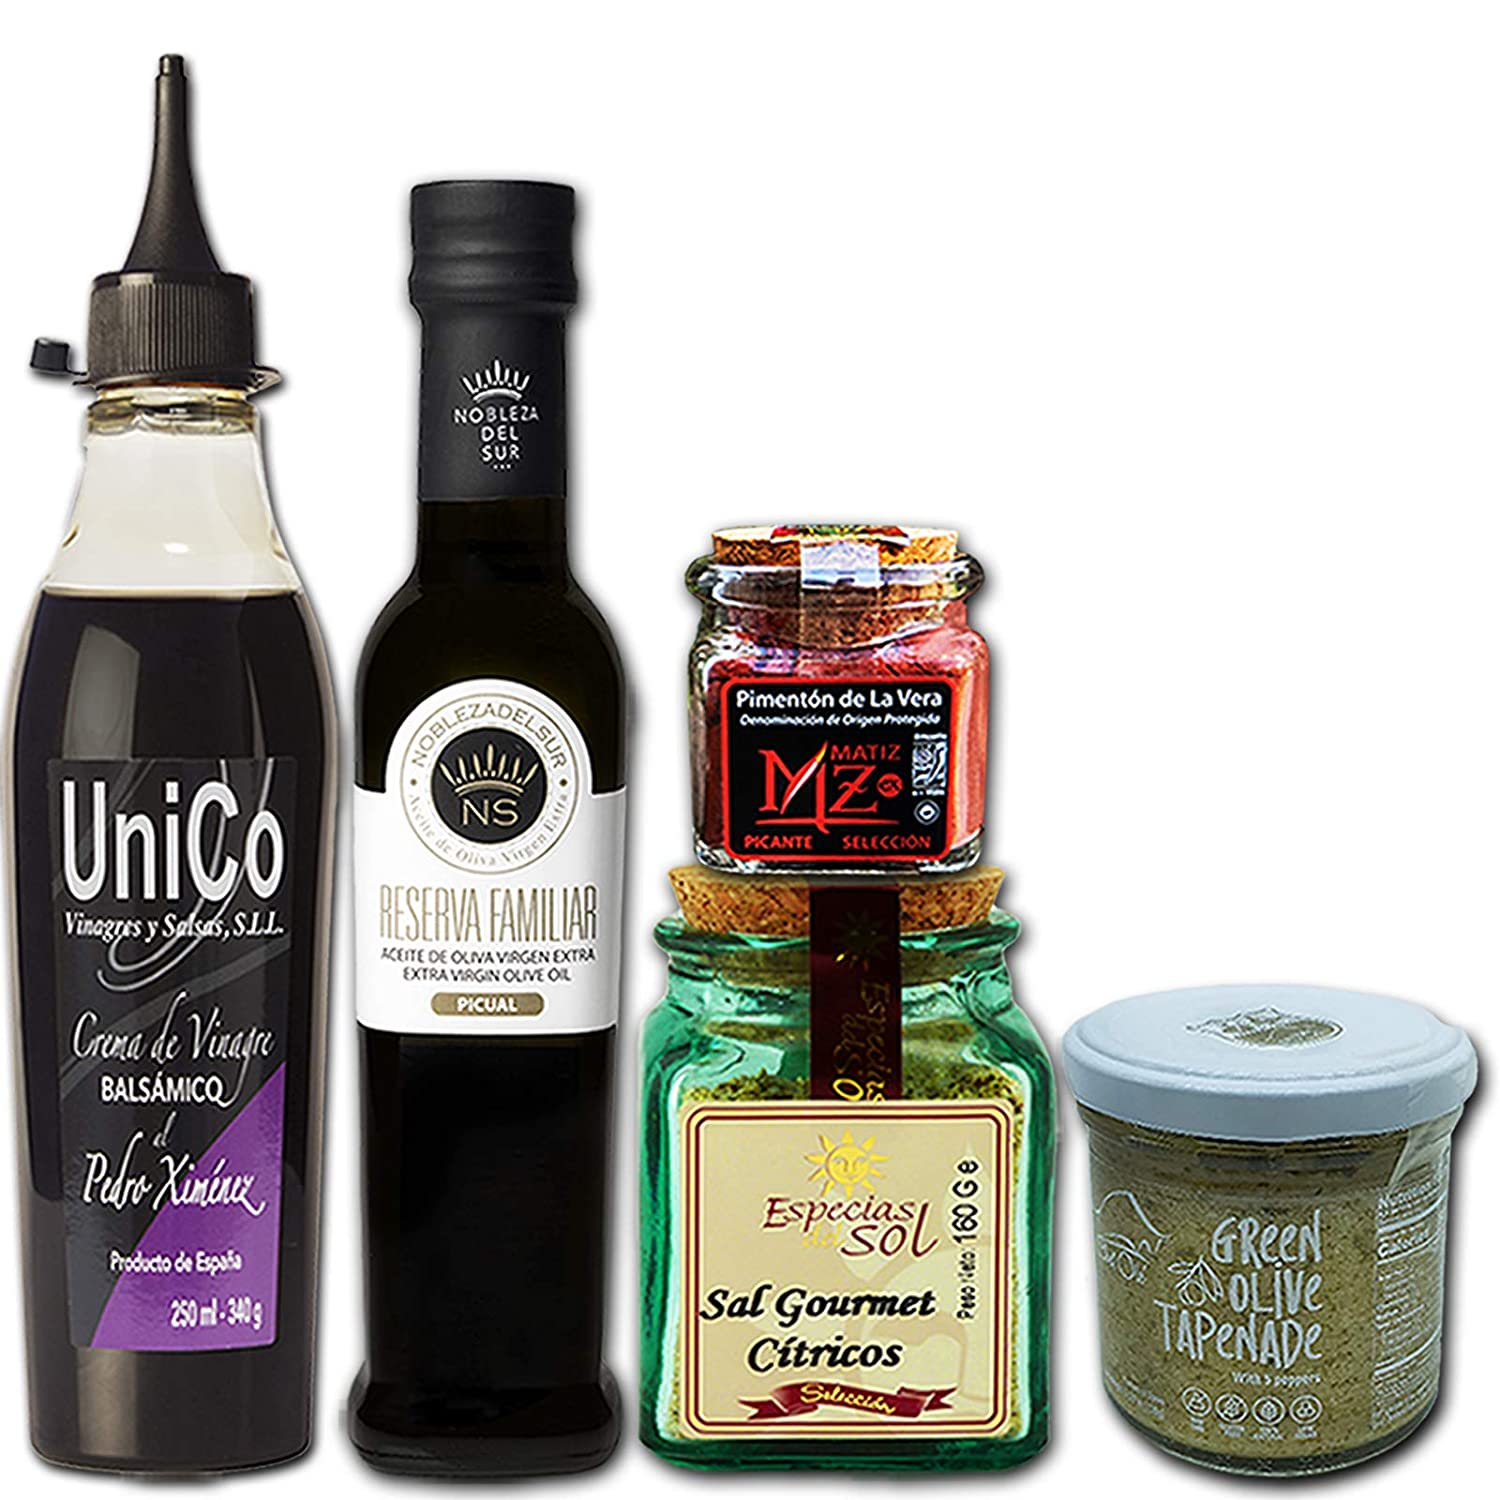 Chef Ole Picasso Gourmet Gift Basket a Noble Selection of 5 Healthy Premium Products from Spain,Natural,Artisan,Non-GMO.Spanish Food Essentials for Tapas,Paella & Wine Pairing.A Unique Foodie Gift